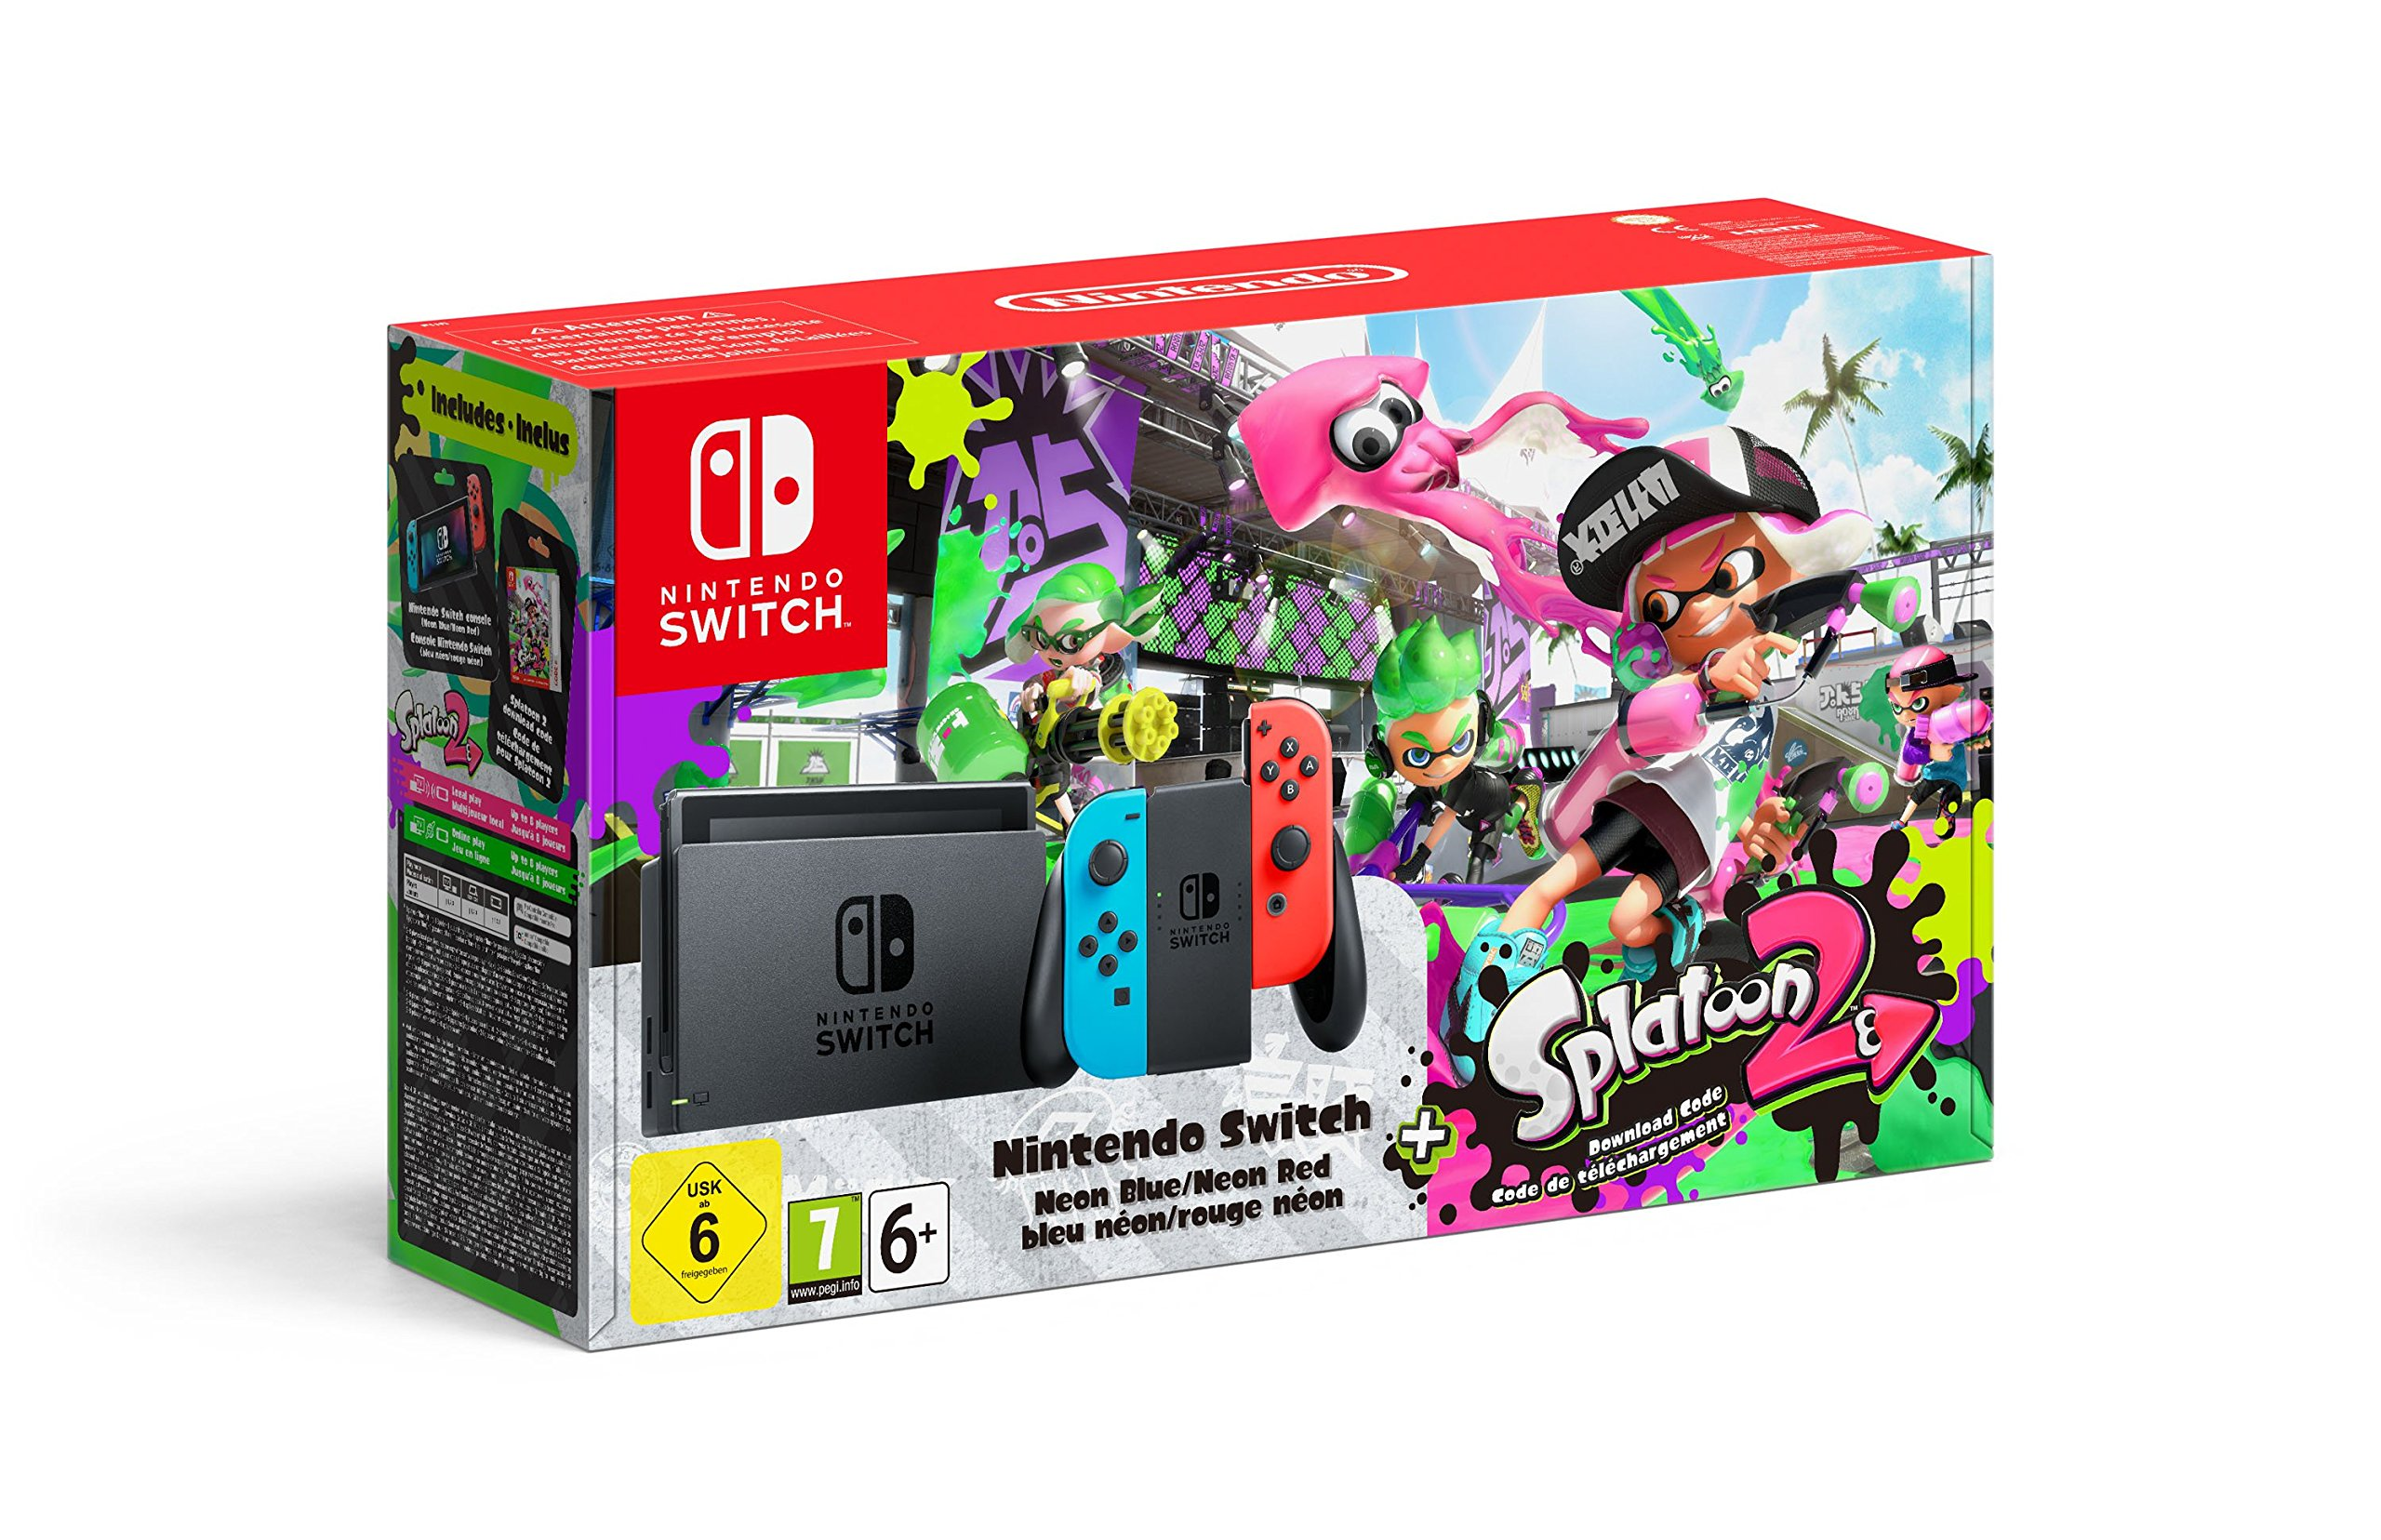 Nintendo Switch Console + Splatoon 2